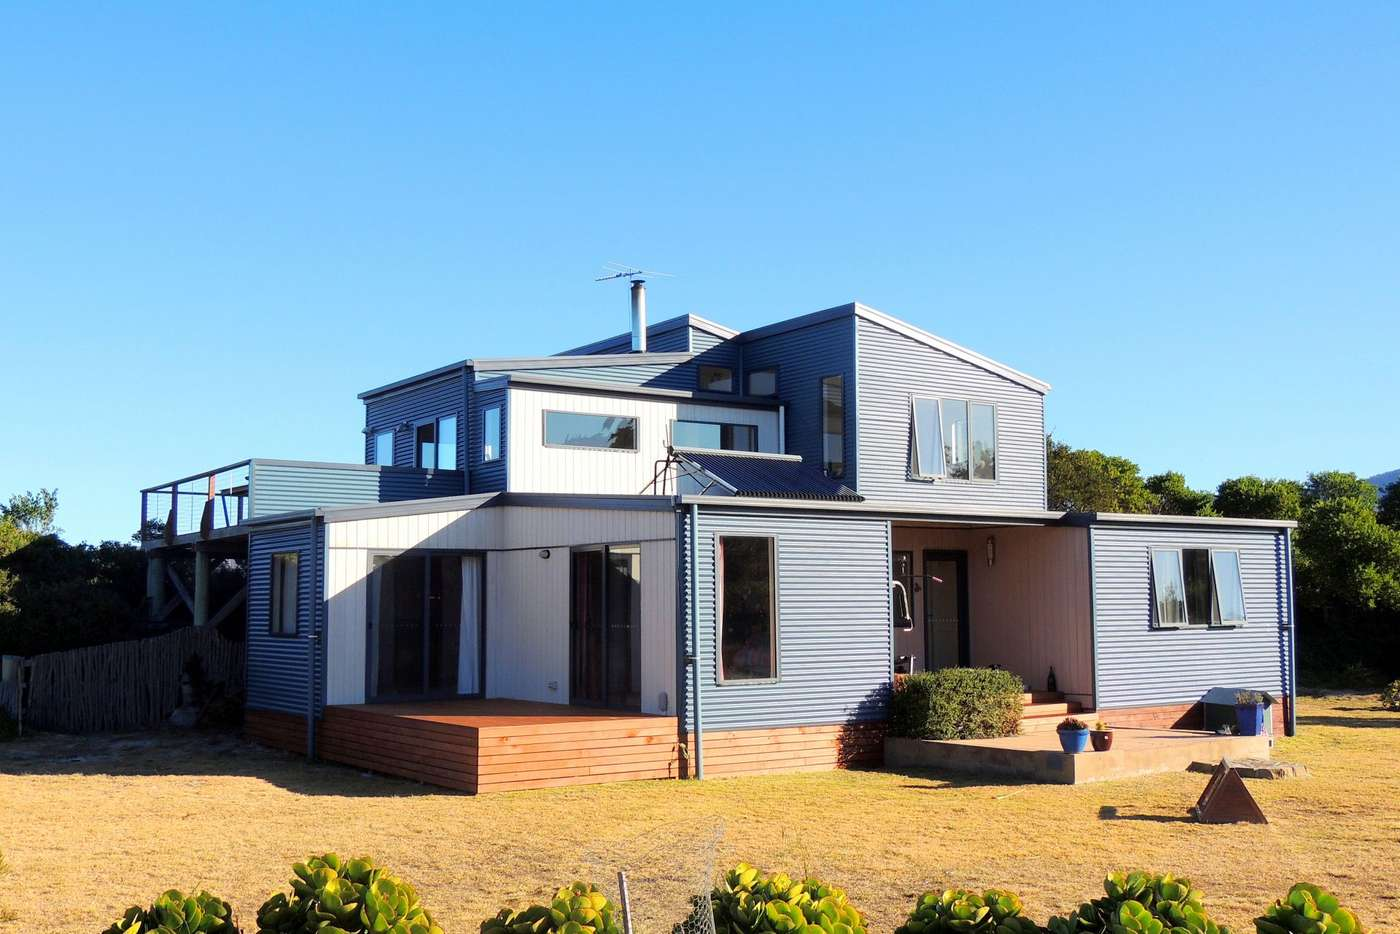 Main view of Homely house listing, 4 Templestowe St, Seymour TAS 7215